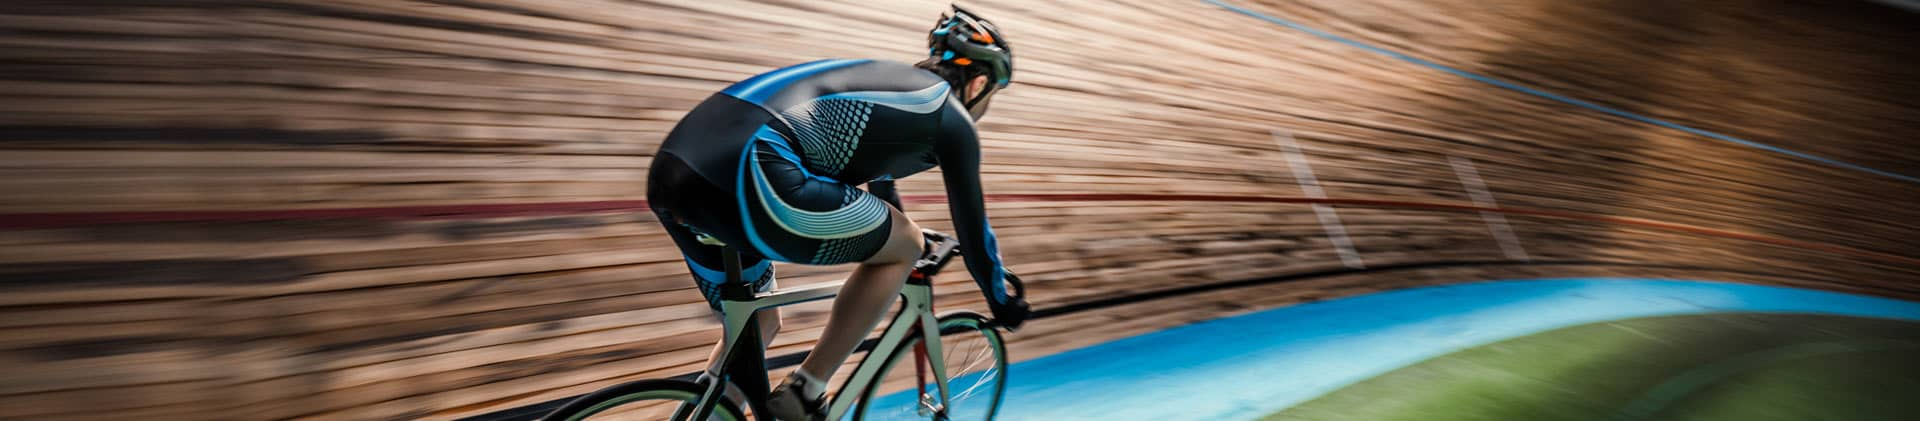 Cyclist in velodrome racing